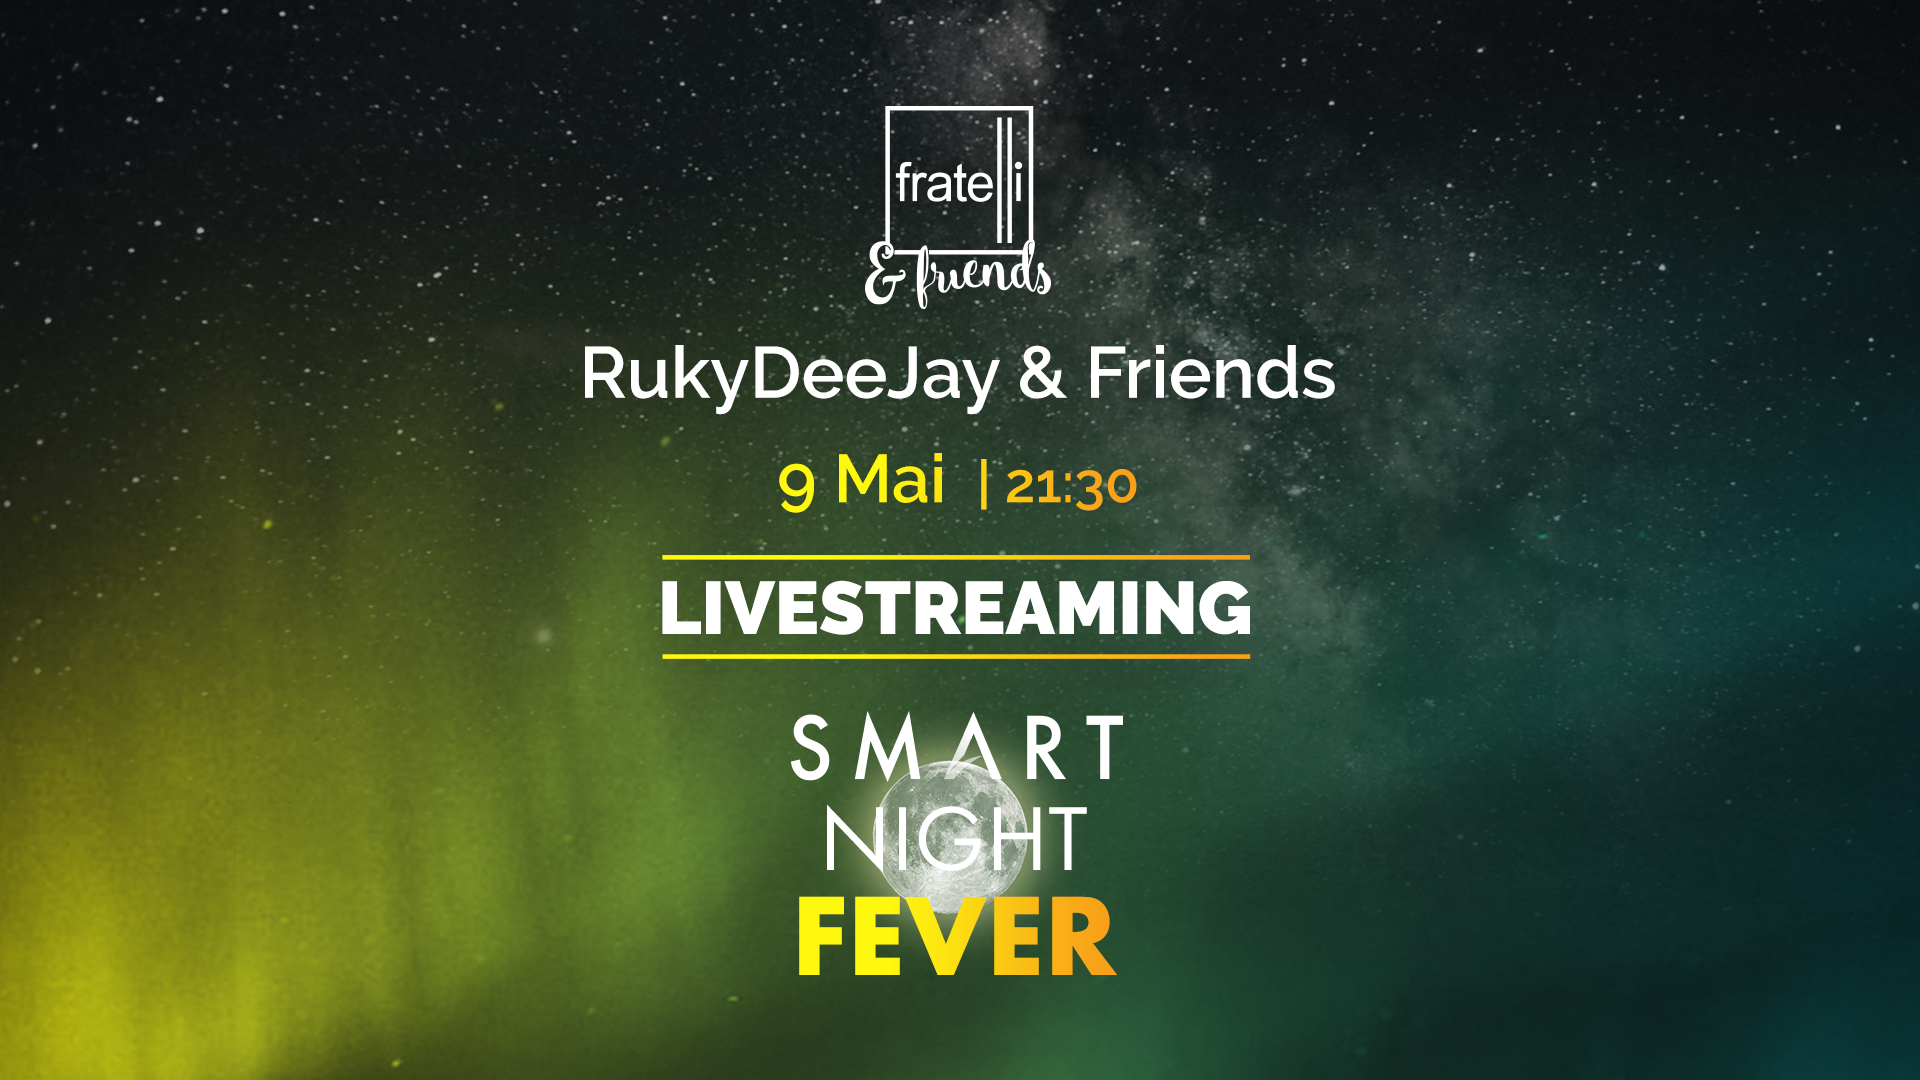 SMART NIGHT FEVER – Party-ul de sâmbătă seara este susținut de Fratelli Social Events